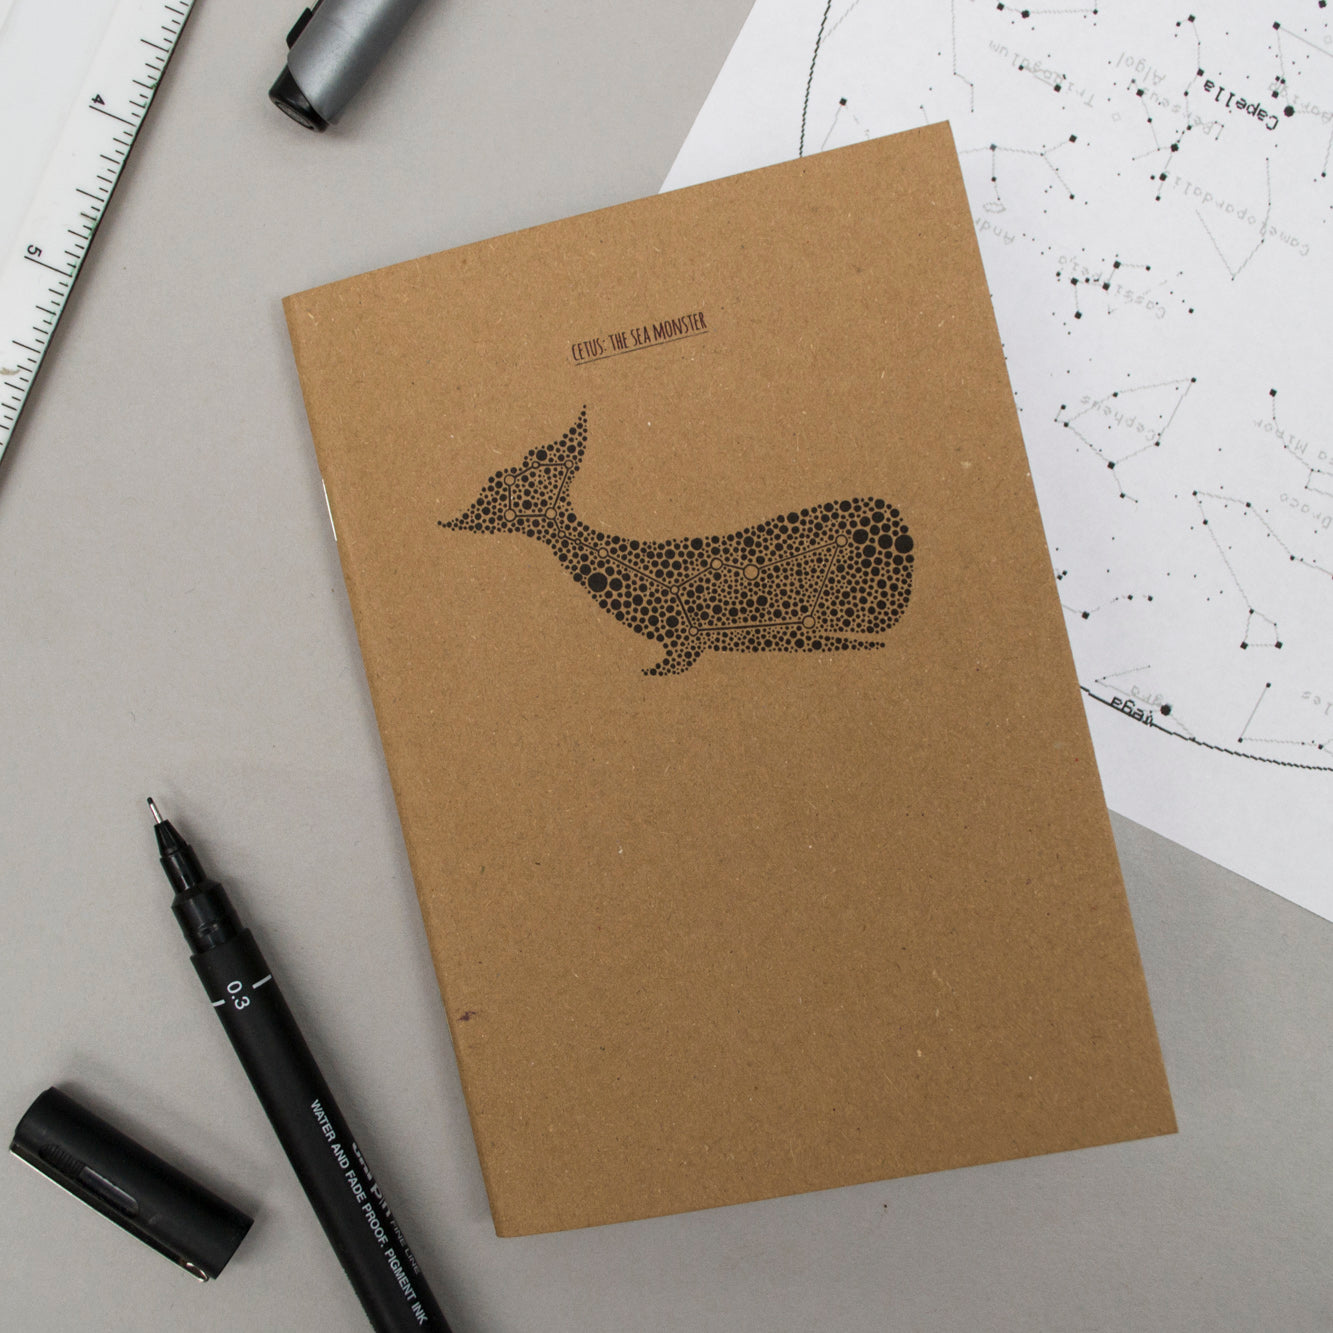 A6 Pocket Notebook - Cetus/The Sea Monster Design